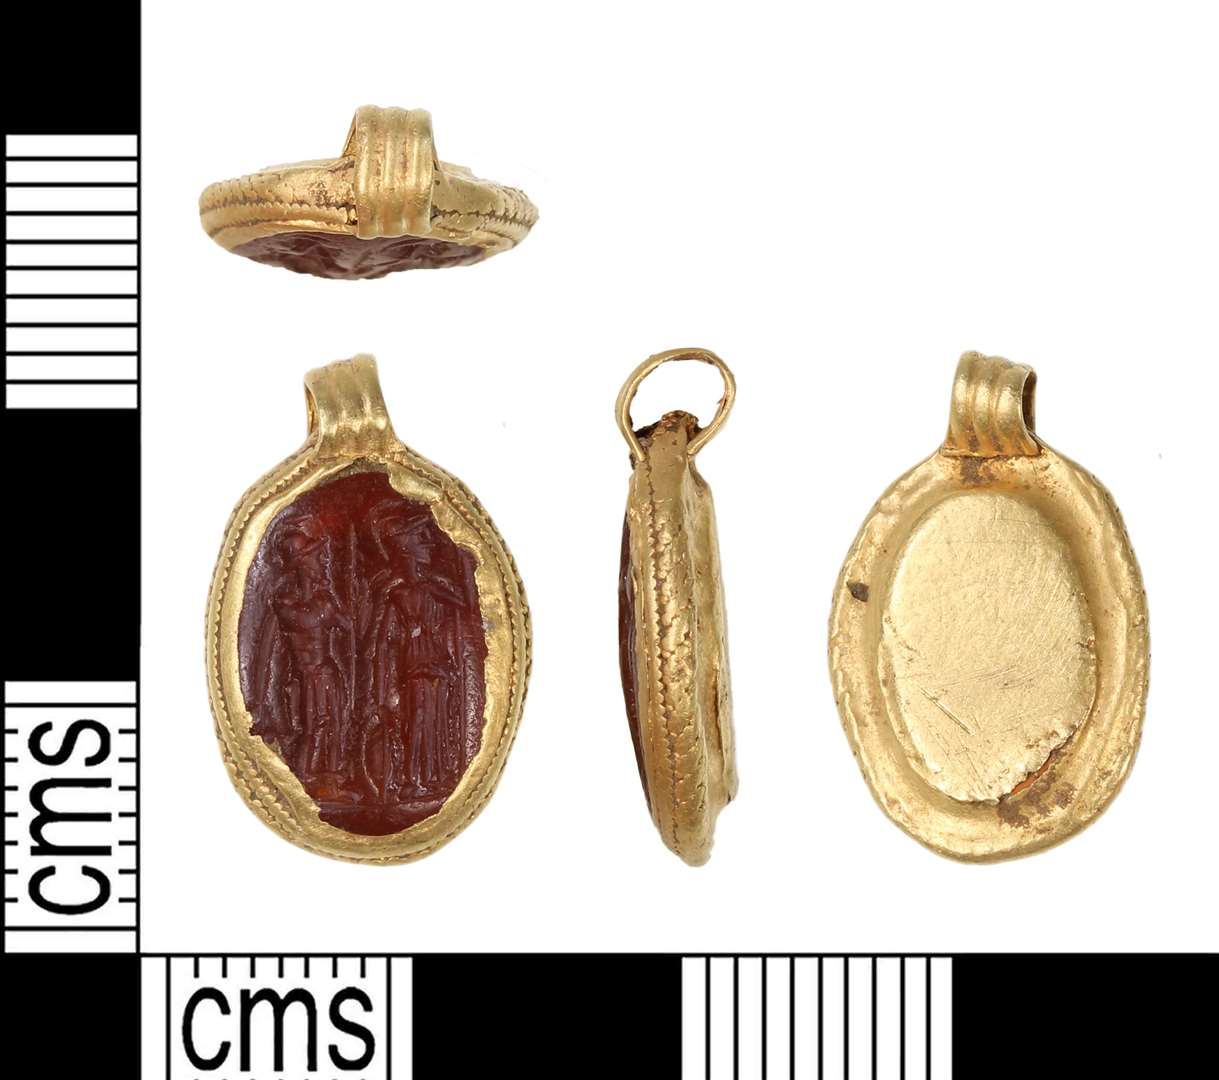 The Anglo Saxon pendant was found in August 2018 (12332989)